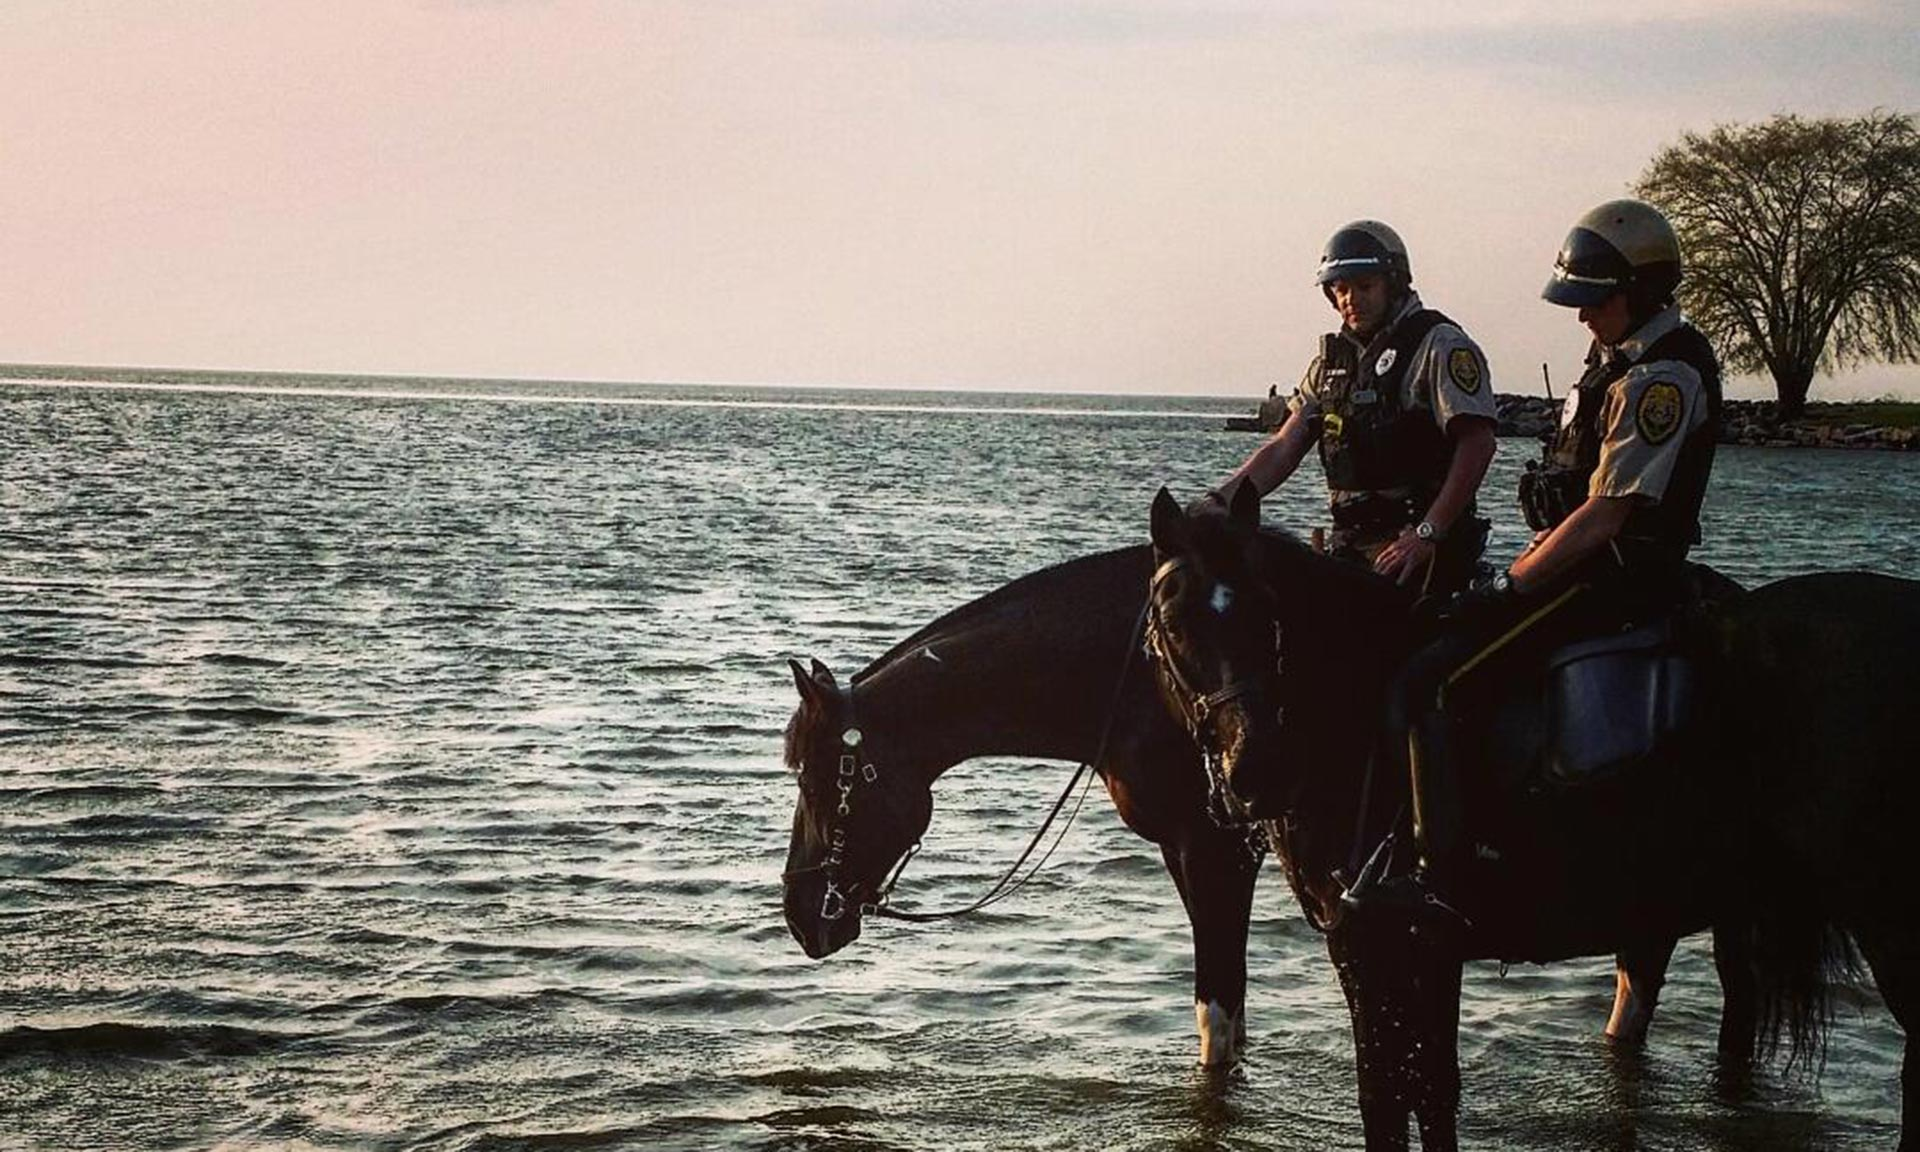 Two Mounted Rangers on the coast at sunset